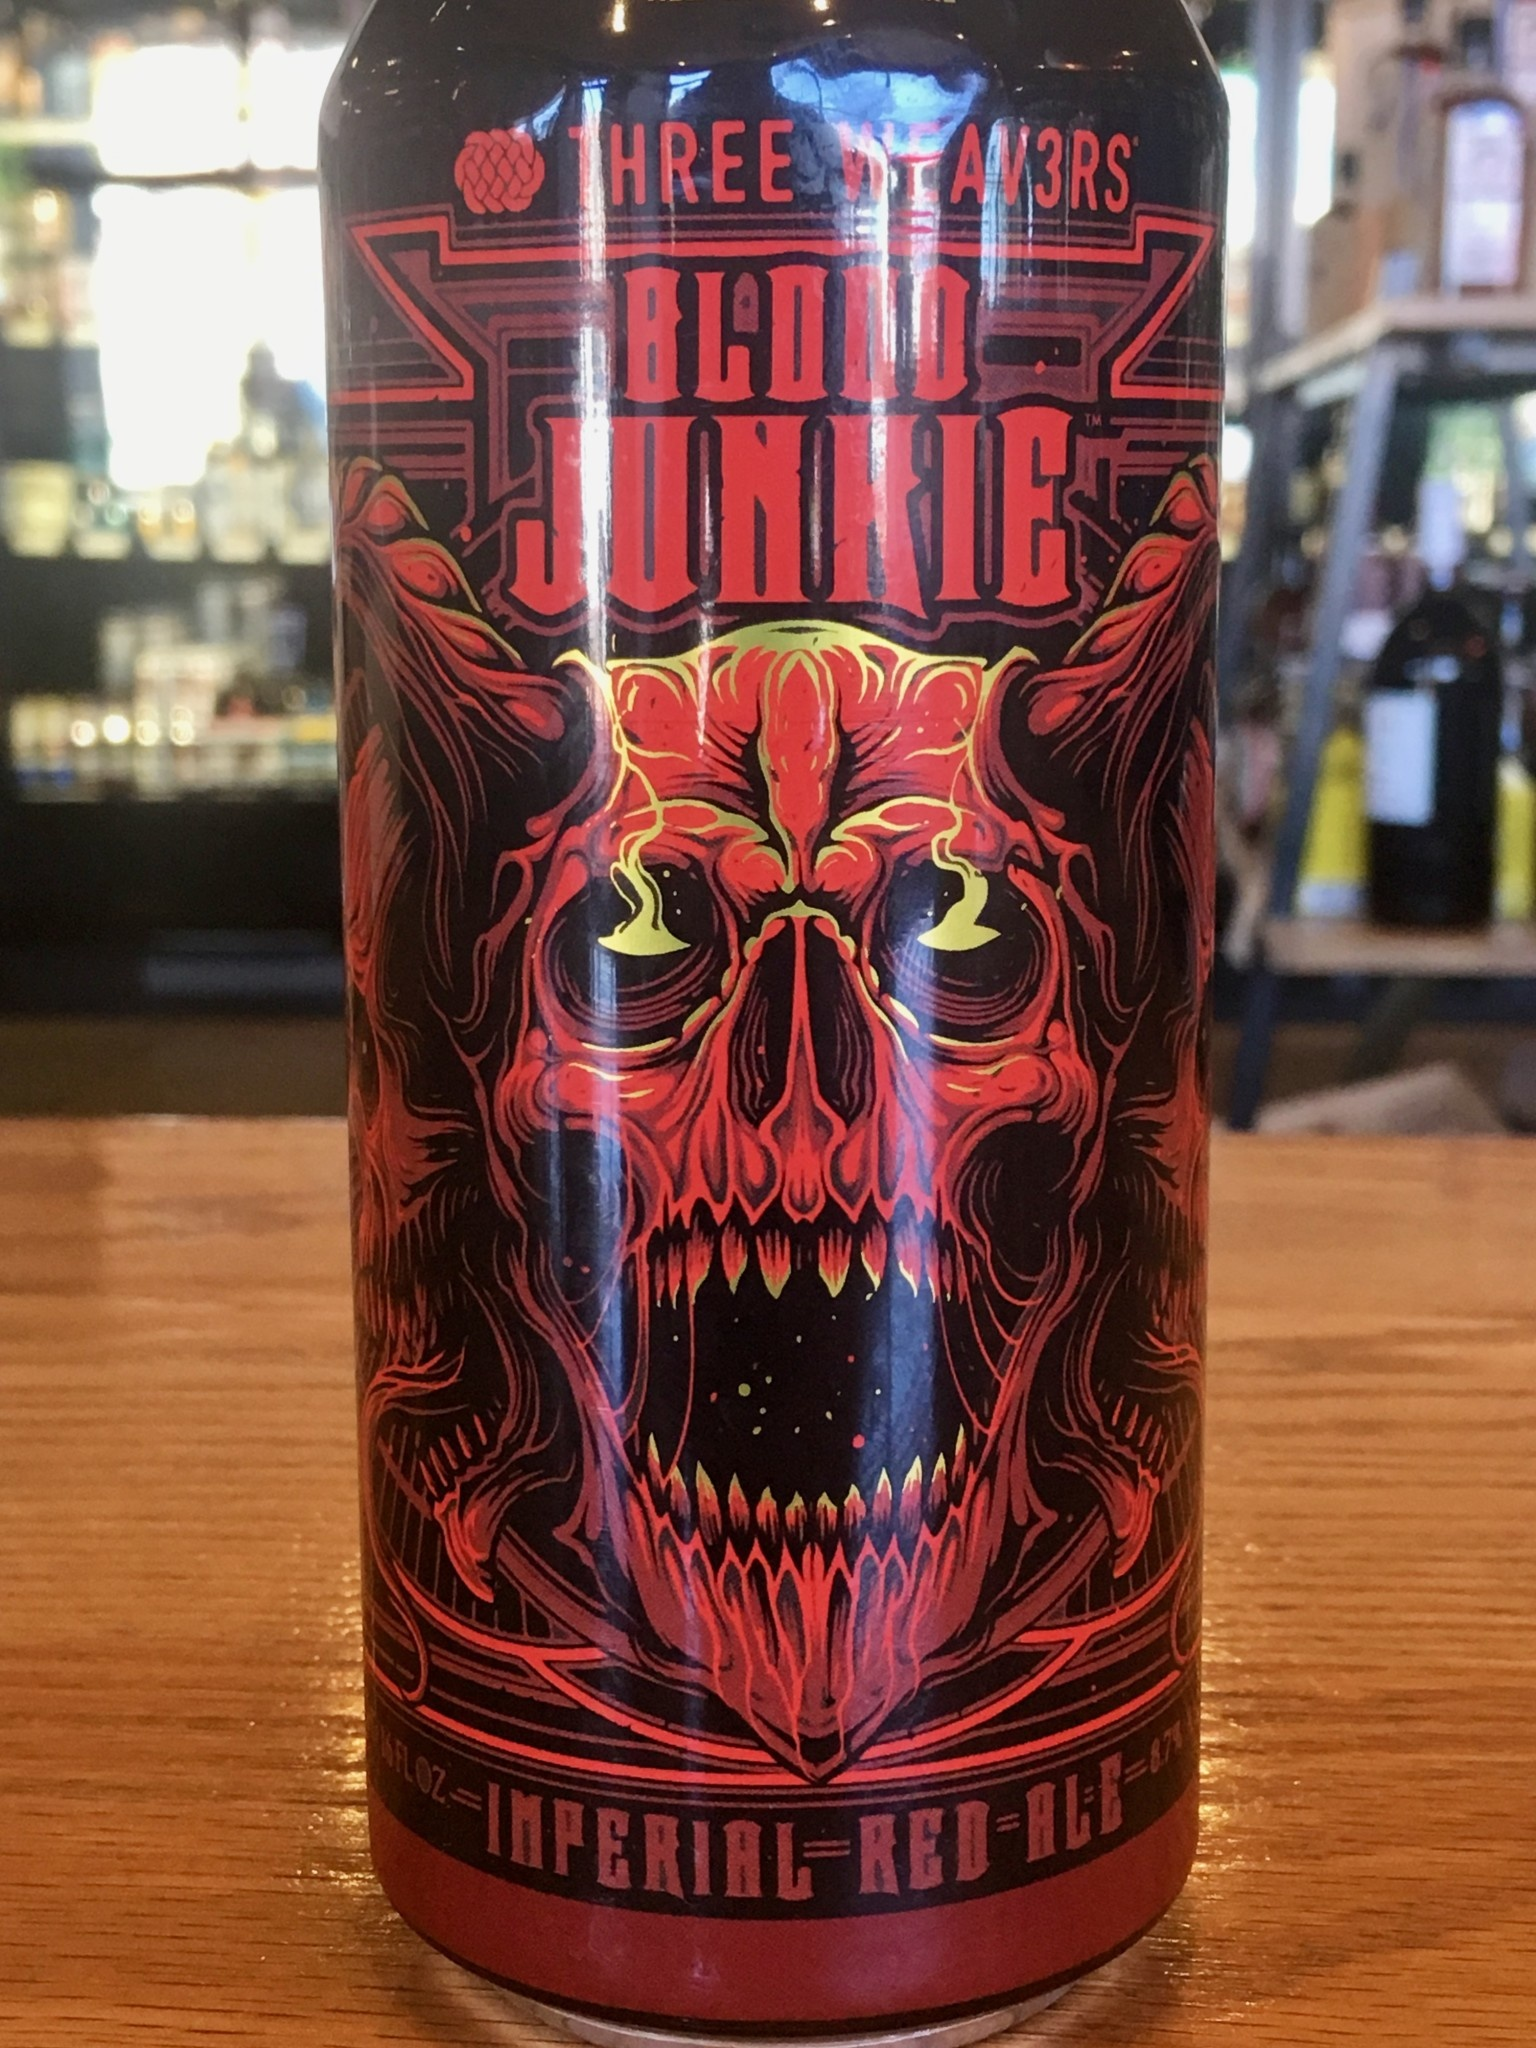 Three Weavers Blood Junkie Imperial Red Ale 16oz